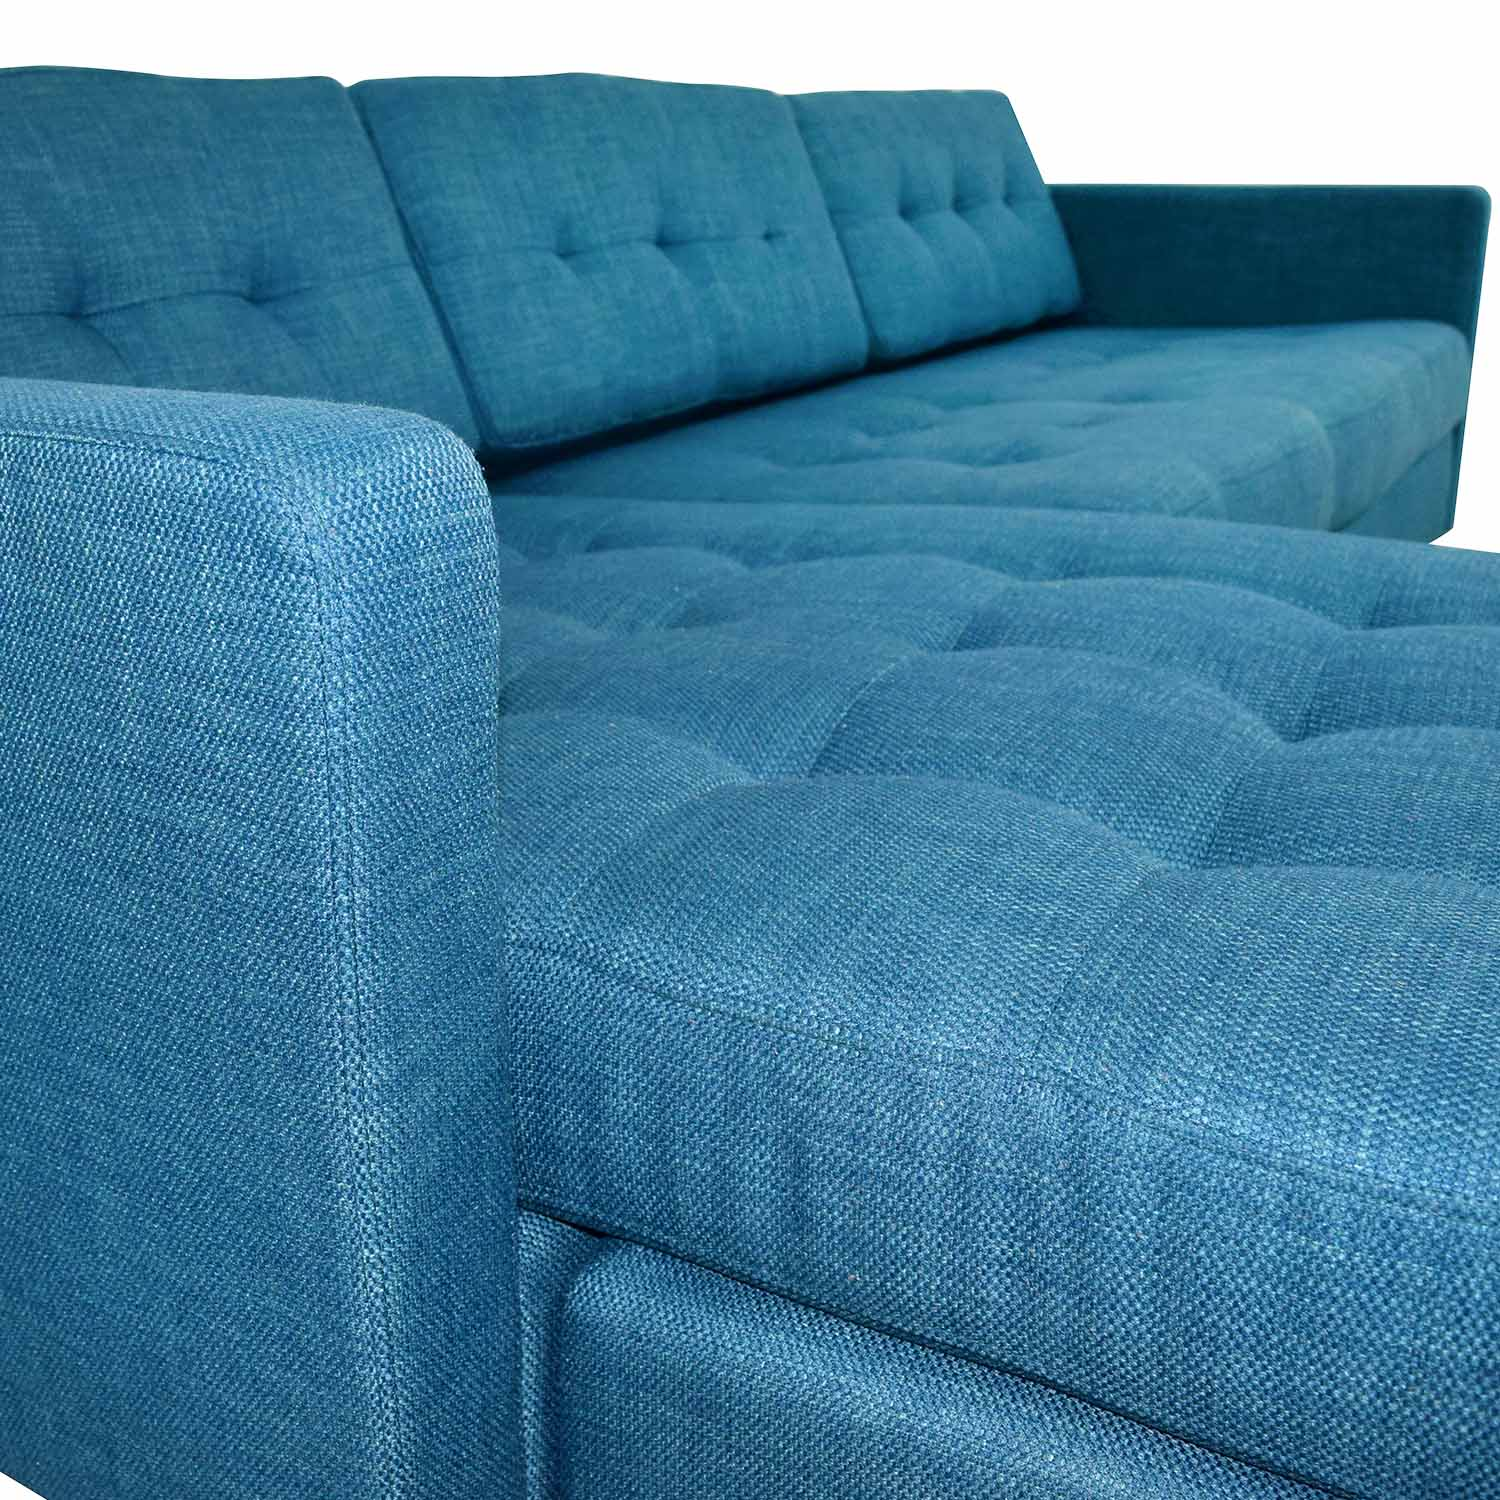 Admirable 33 Off Cb2 Cb2 Ditto Ii Peacock Sectional Sofa Sofas Pdpeps Interior Chair Design Pdpepsorg